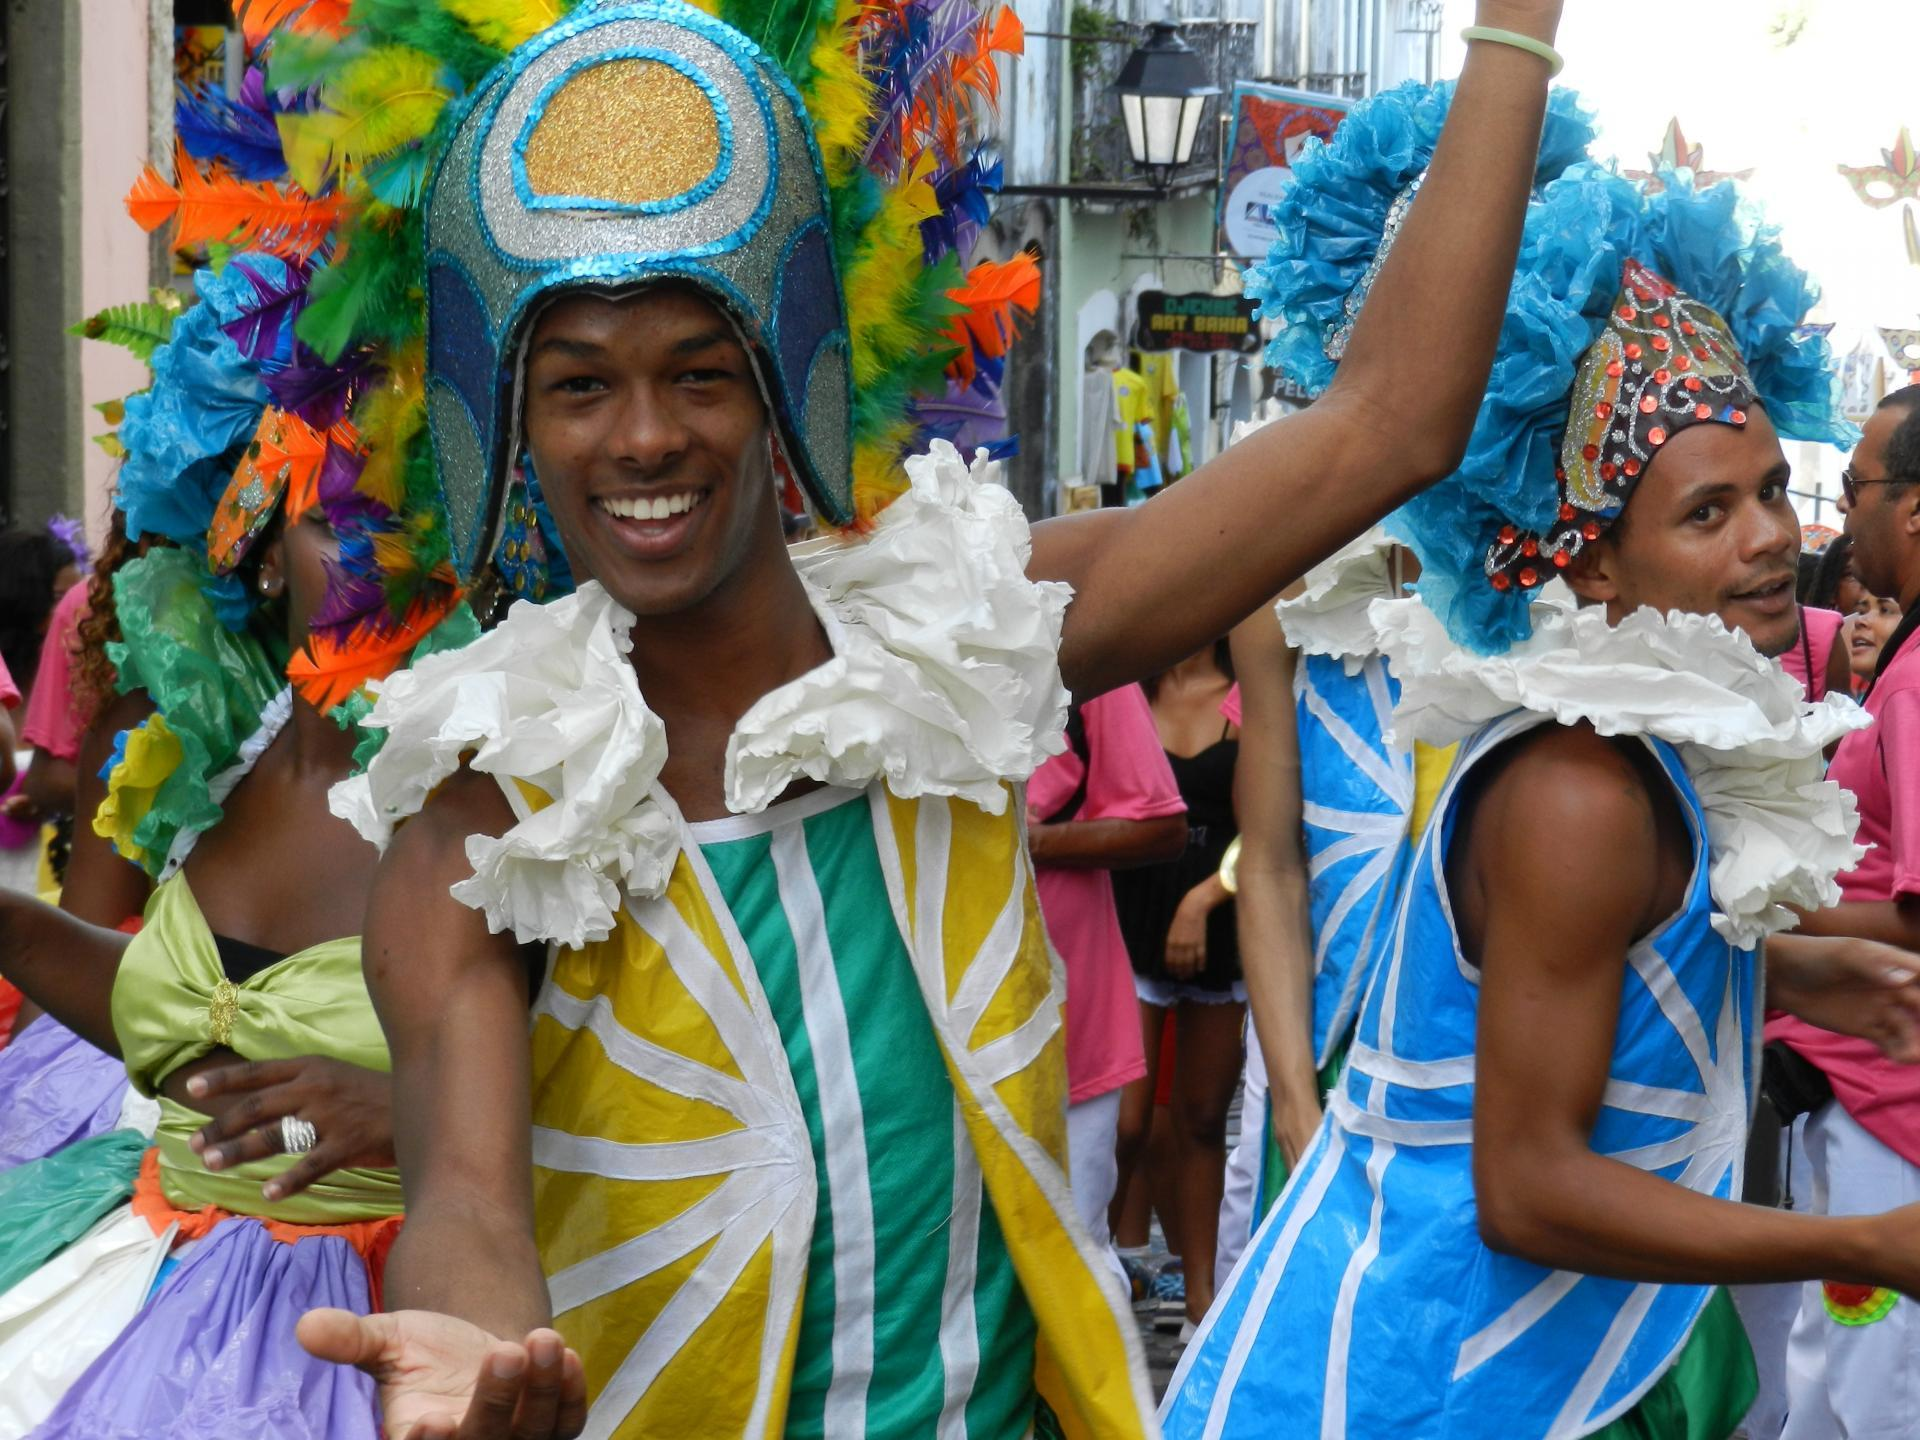 Two men show off wide smiles at Carnival in Salvador, Bahia.